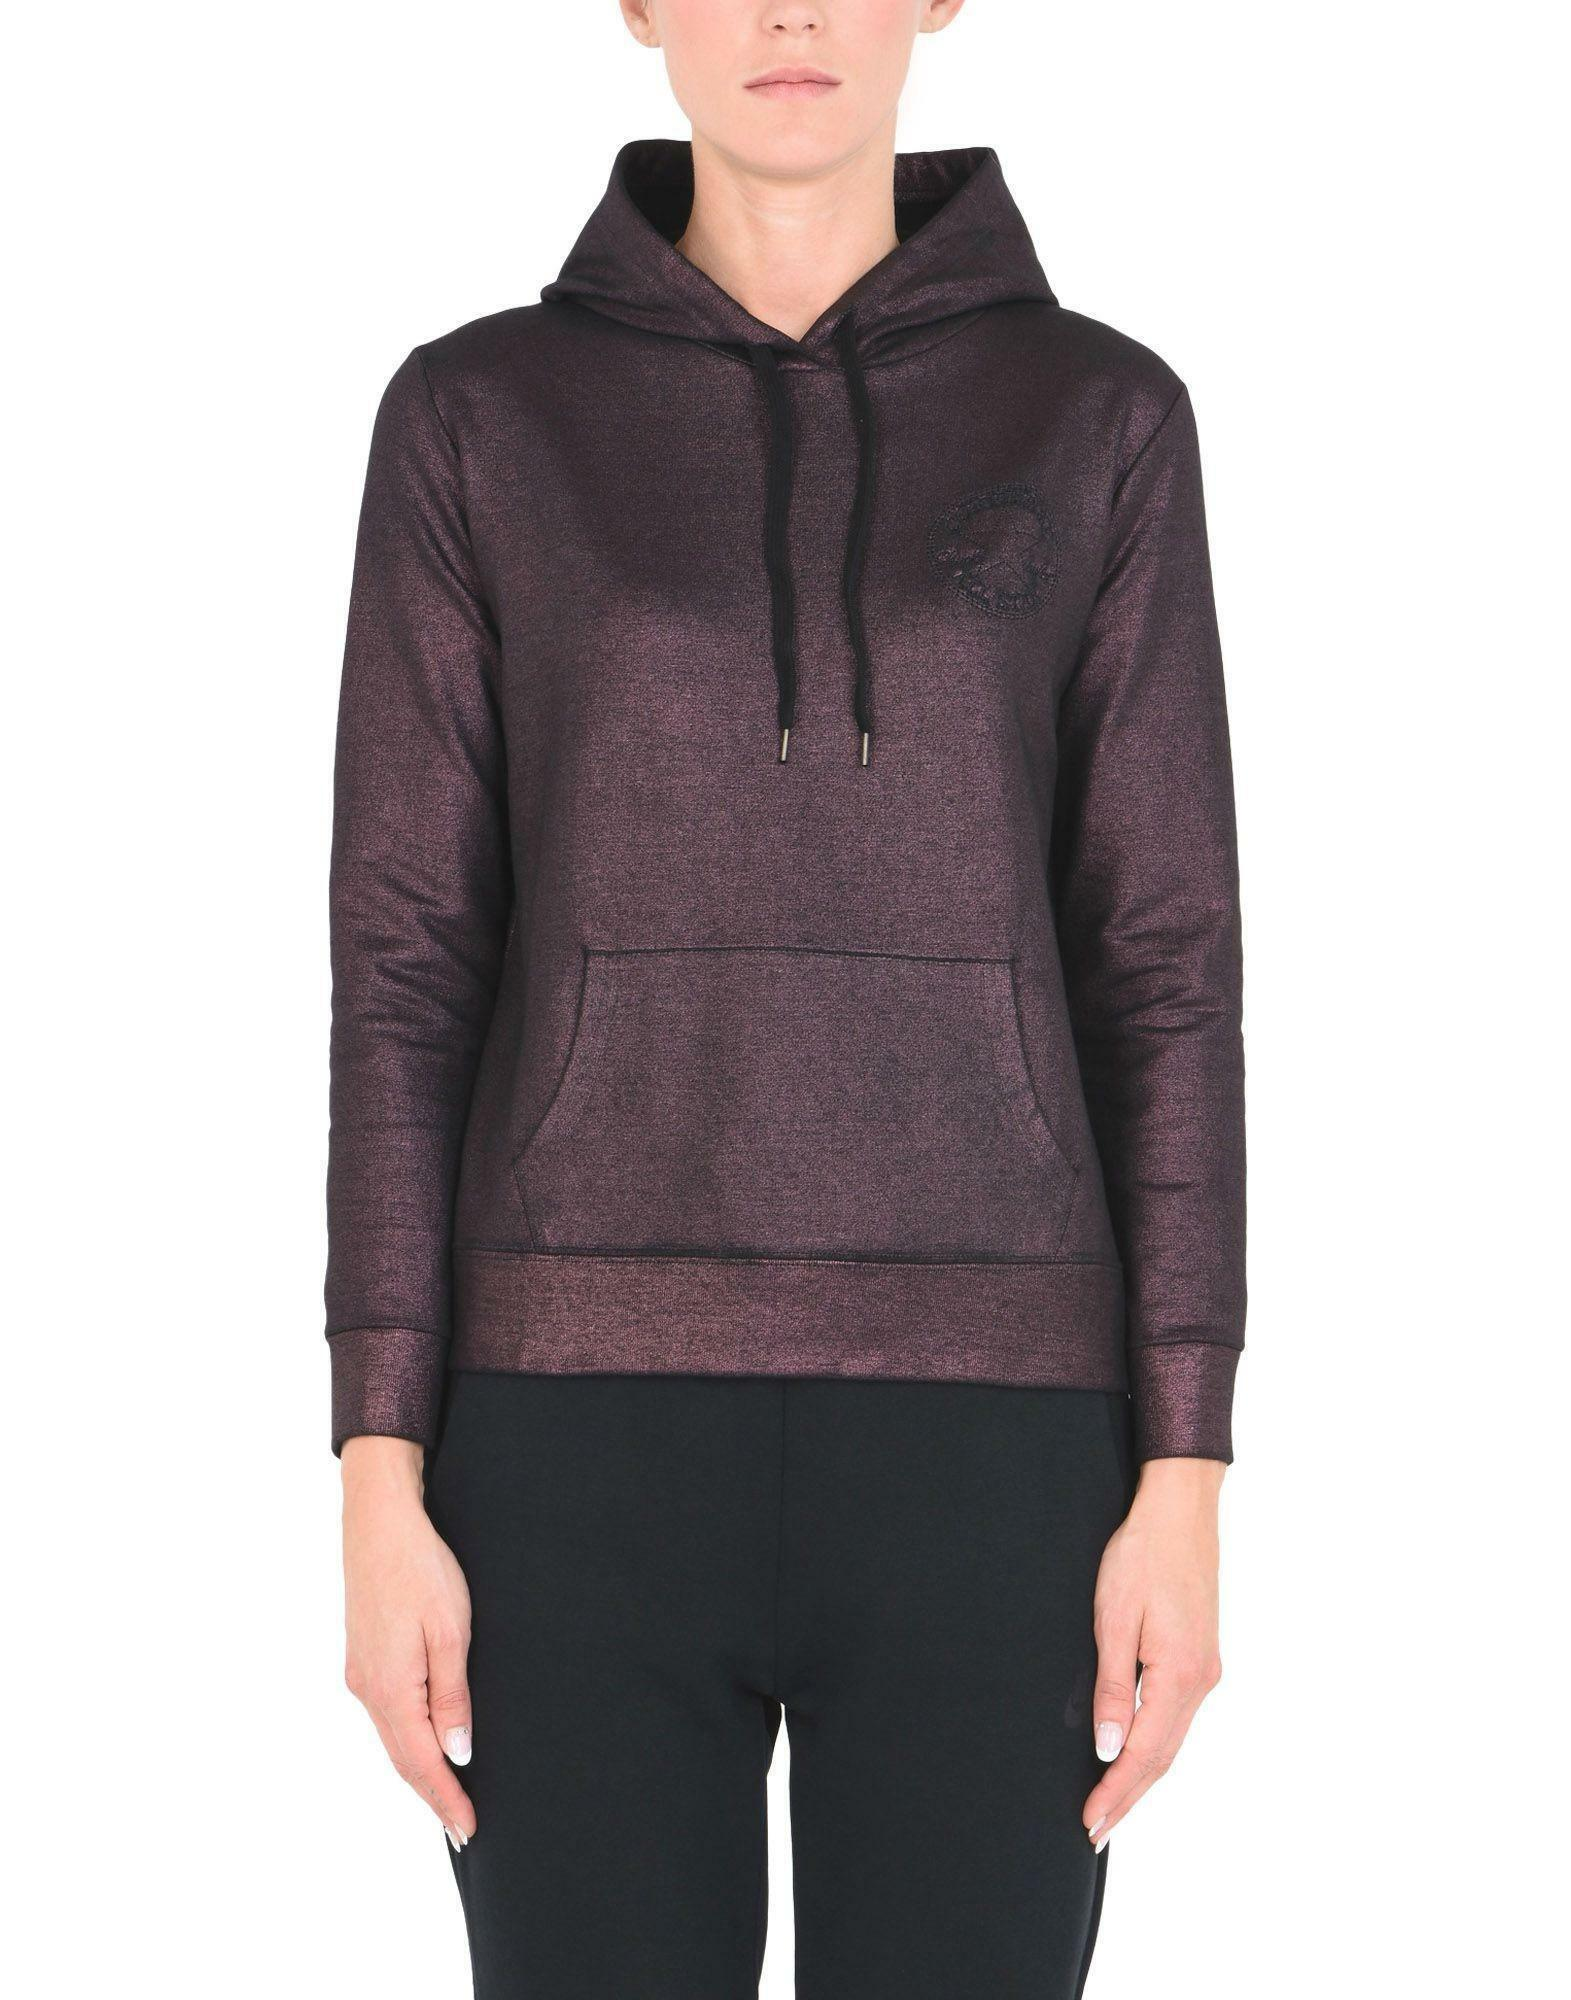 converse converse fleece hood sweater ct metal felpa donna bordeaux